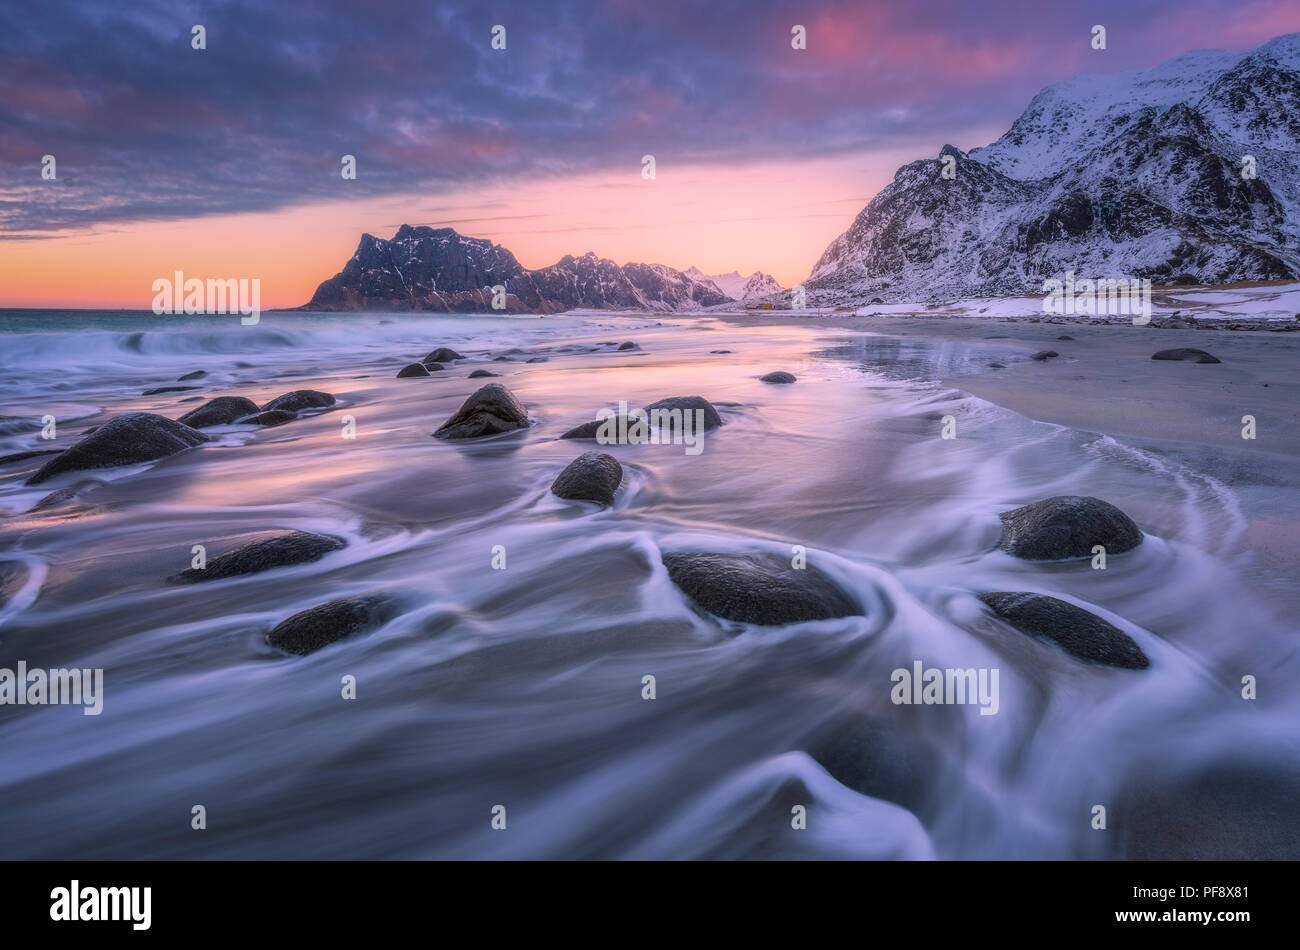 Beautiful sandy beach with stones in blurred water, colorful cloudy pink sky and snowy mountains at sunset. Utakleiv beach, Lofoten islands, Norway. W - Stock Image